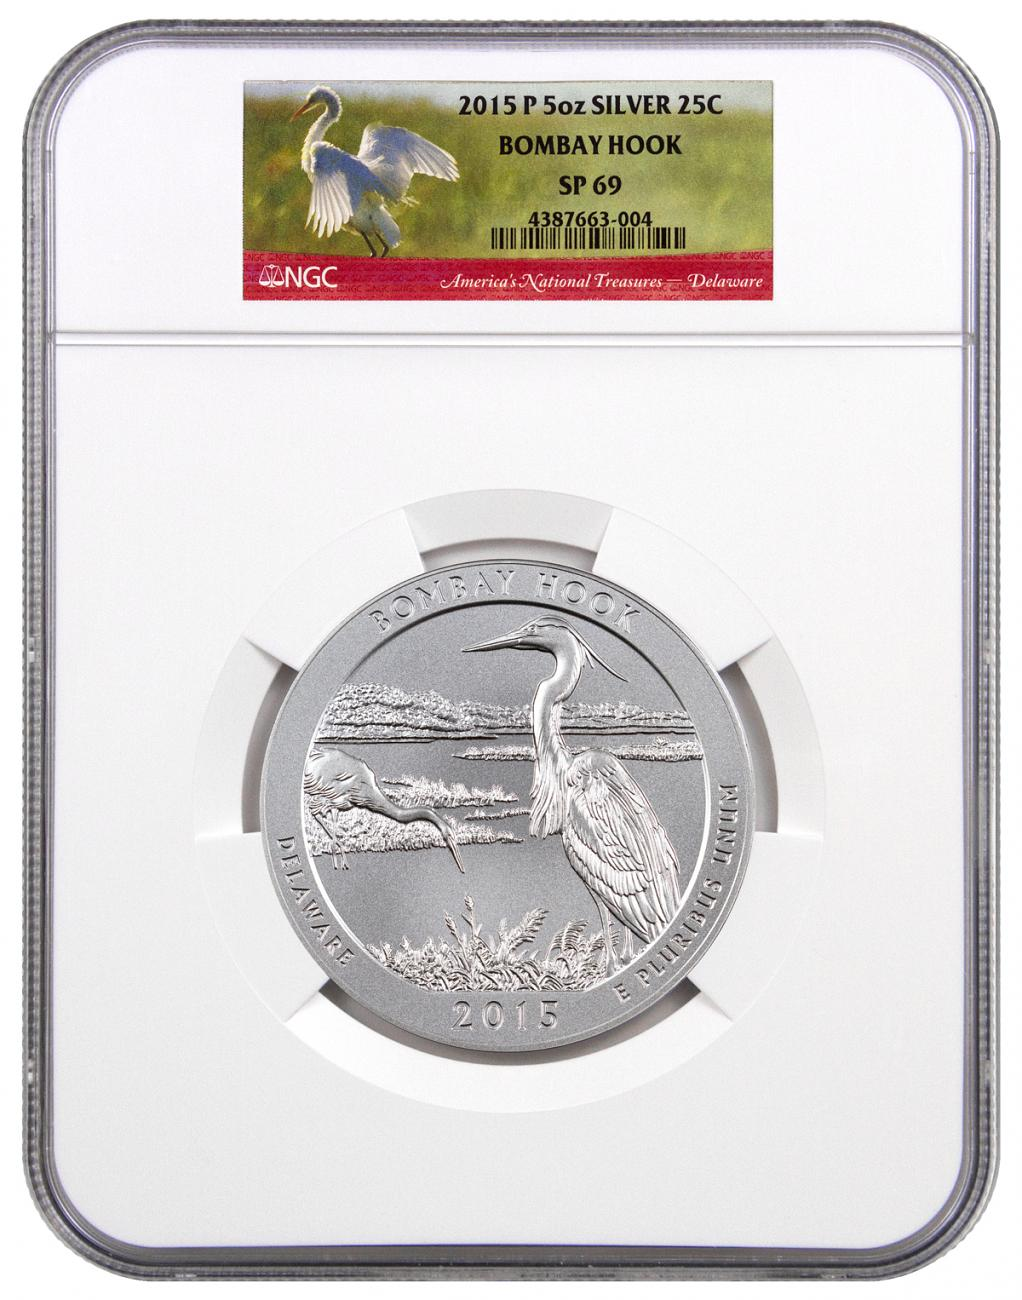 2015-P Bombay Hook 5 oz. Silver America the Beautiful Specimen Coin NGC SP69